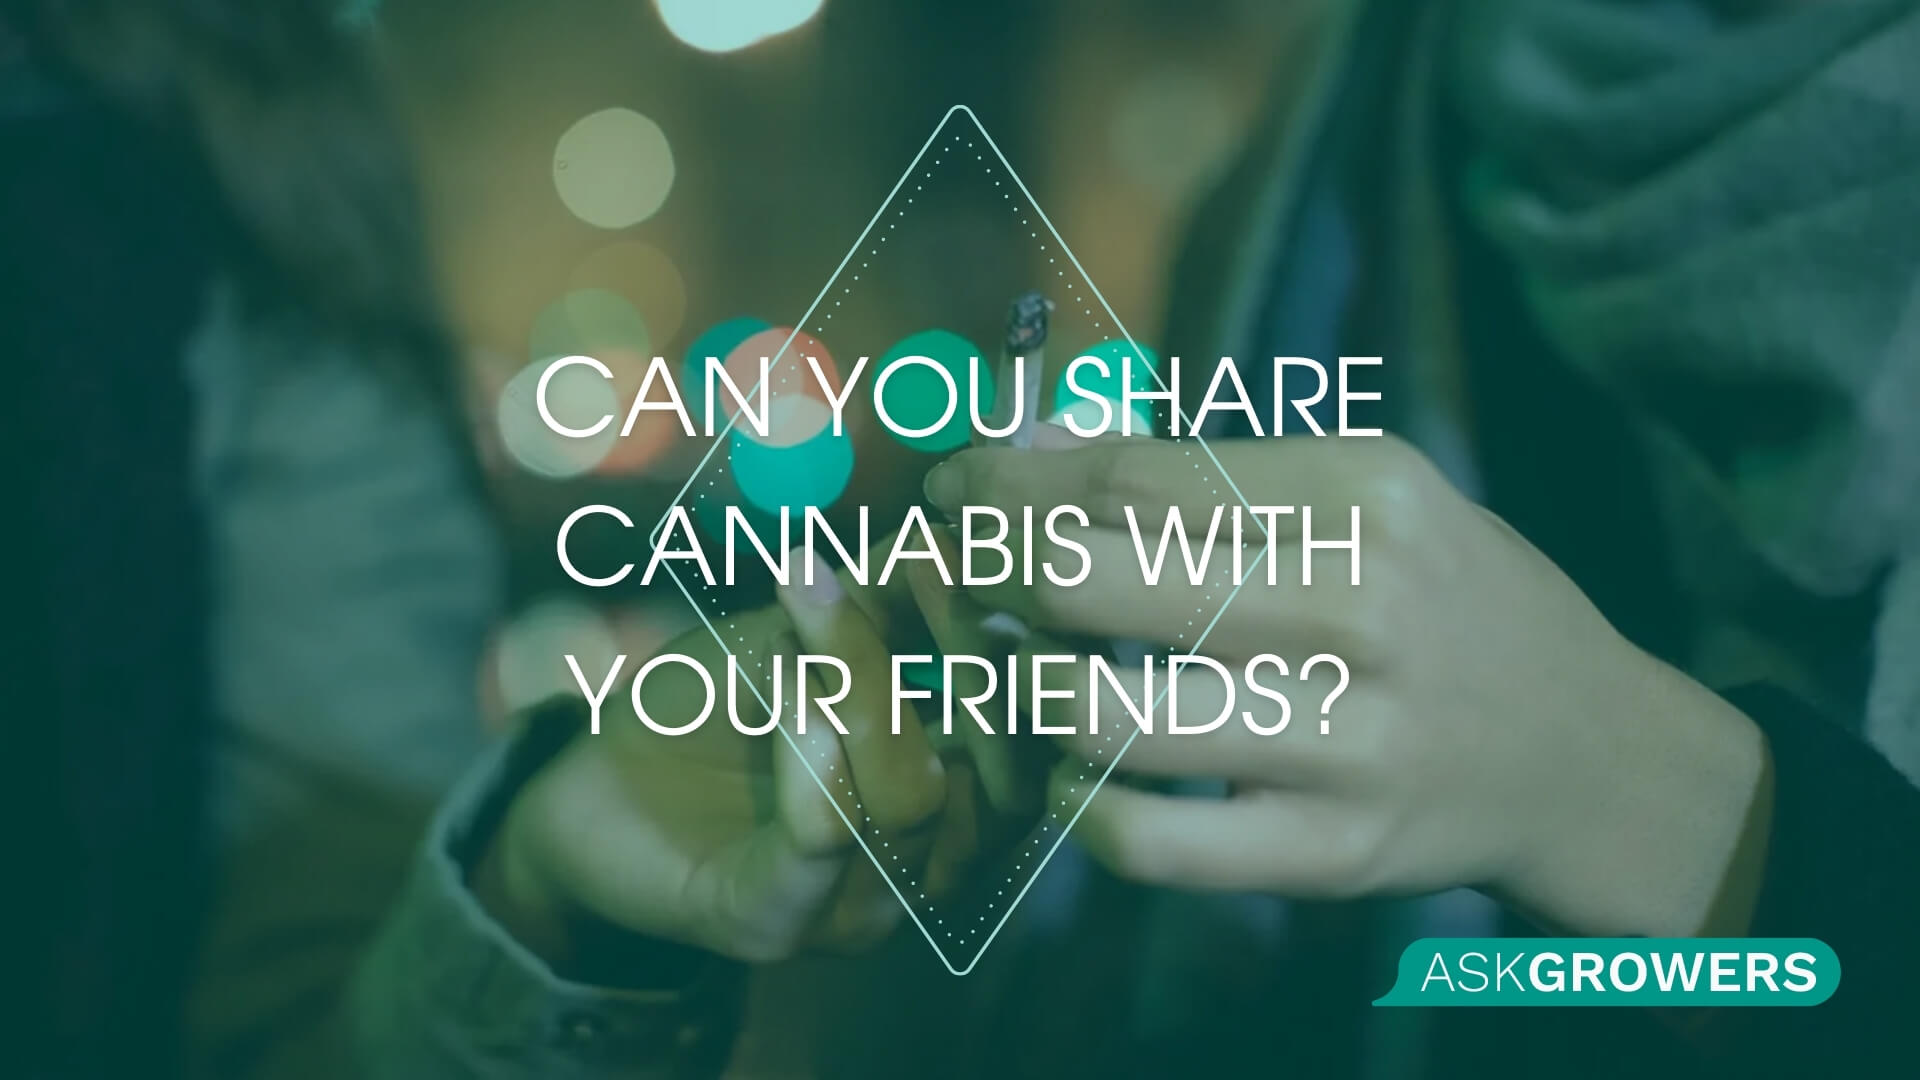 Can You Share Cannabis With Your Friends, AskGrowers